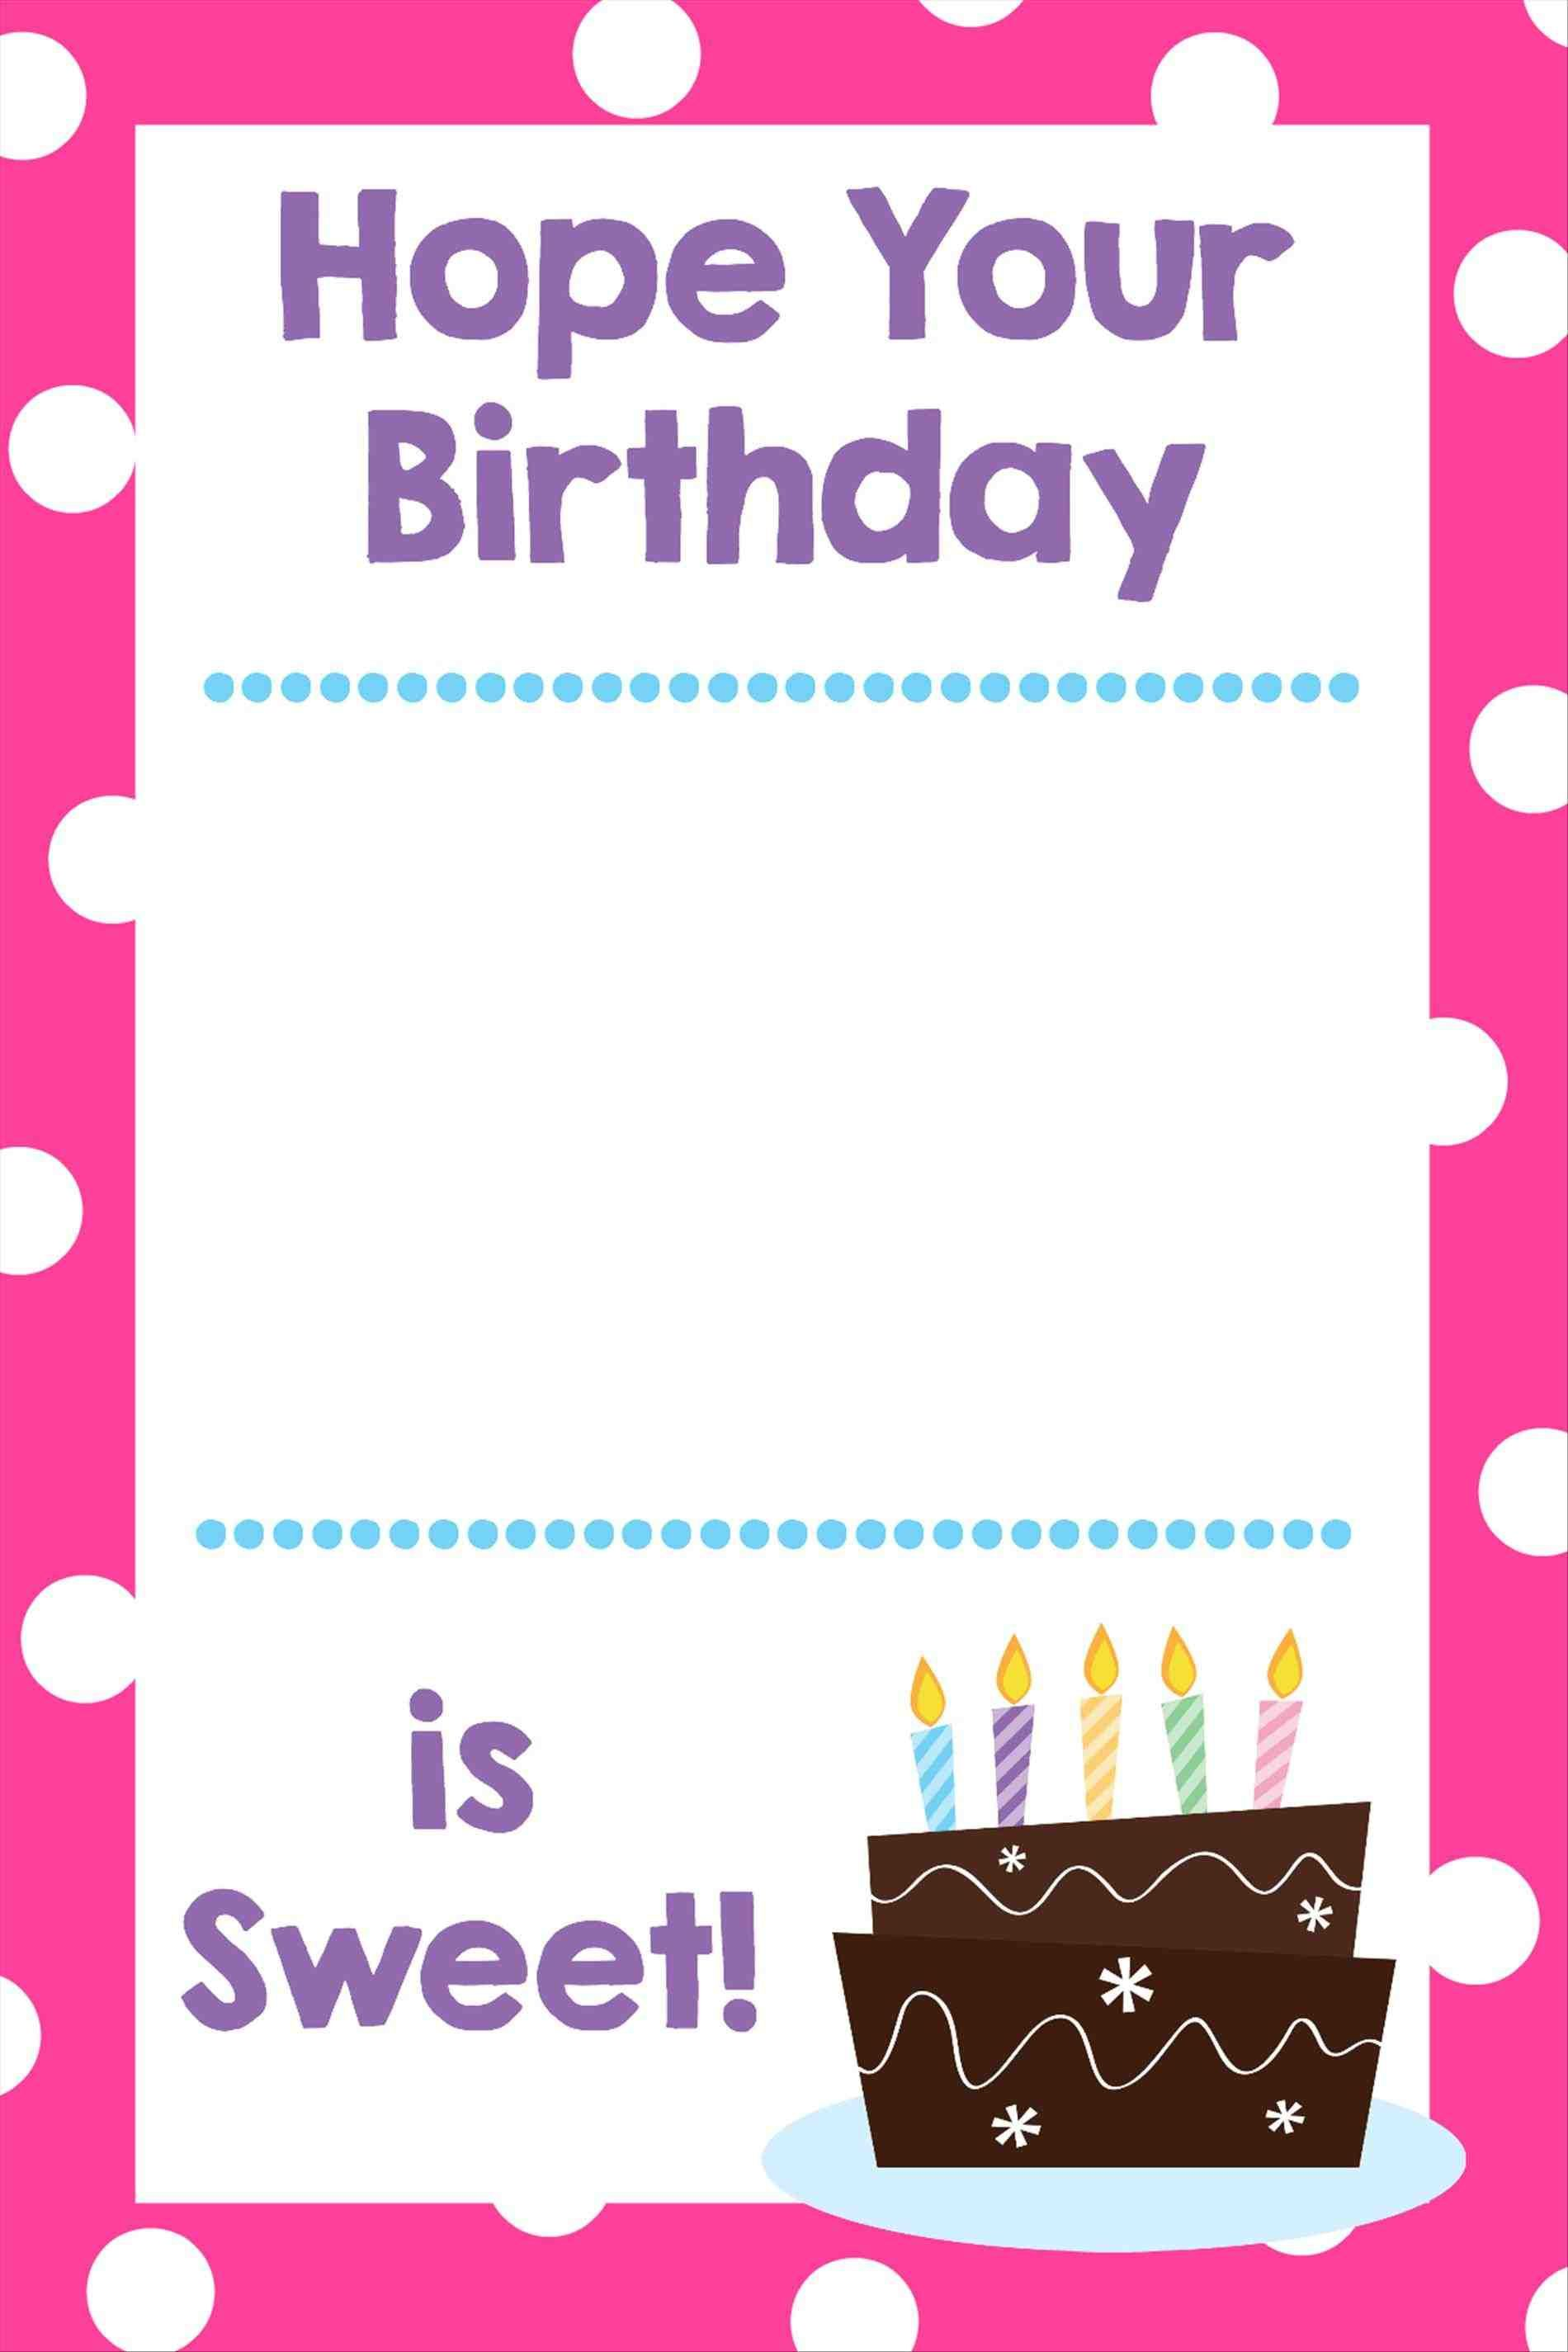 Top Happy Birthday Gift Card Collection Unique Happy Birthday Gift Card Concept Hap Birthday Gift Cards Free Printable Birthday Cards Birthday Card Printable